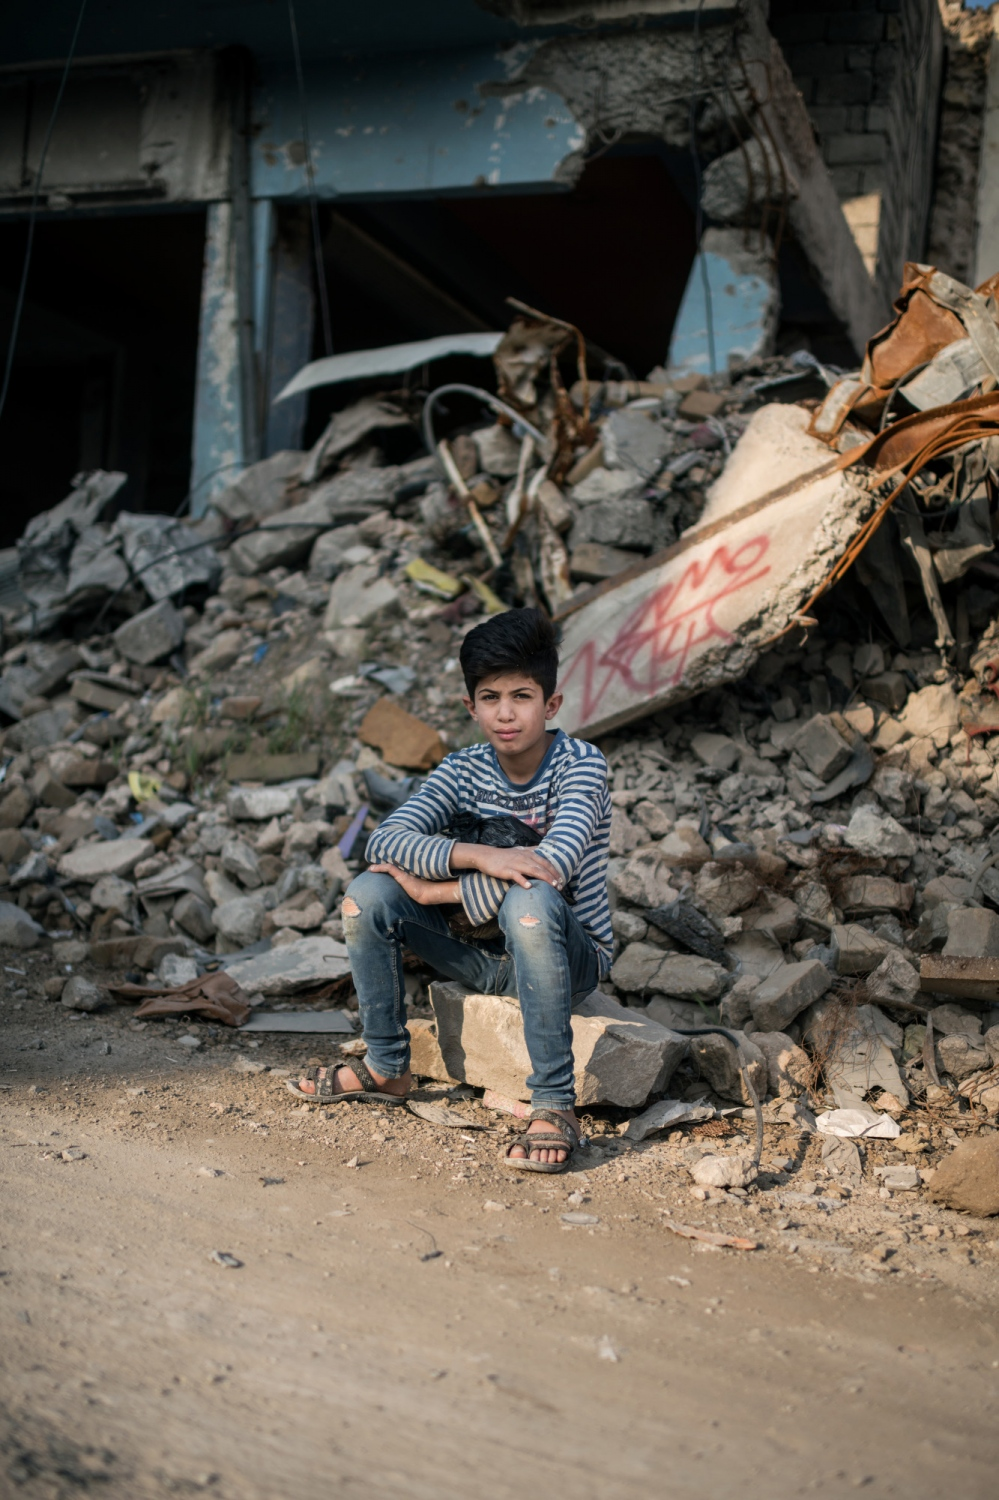 MOSUL 20180414 Mustafa Walid, 10, lives with his father, mother and three siblings. His dad is a painter and his mom a house wife. They used to live in old Mosul but had to flee to the eastern oarts when Daesh entered their neighbourhood. We meed Mustafa and his father in old Mosul. What is your favourite thing? I love my neighbourhood old Mosul. Why? It is our neighbourhood. What so special about it? It is my old neighbourhood. What do you hate most of all? I hate Al-eiser. (The name of the eastern part of Mosul). Why? The rents are high and the people is not very nice. What do you like to do? Work as a painter. To work with your father? Yes. What do you want to be when you grow up? A doctor. What do you dream about? To live in a castle. Where? Anywhere in Iraq, just not east Mosul. Photo: Vilhelm Stokstad / Kontinent